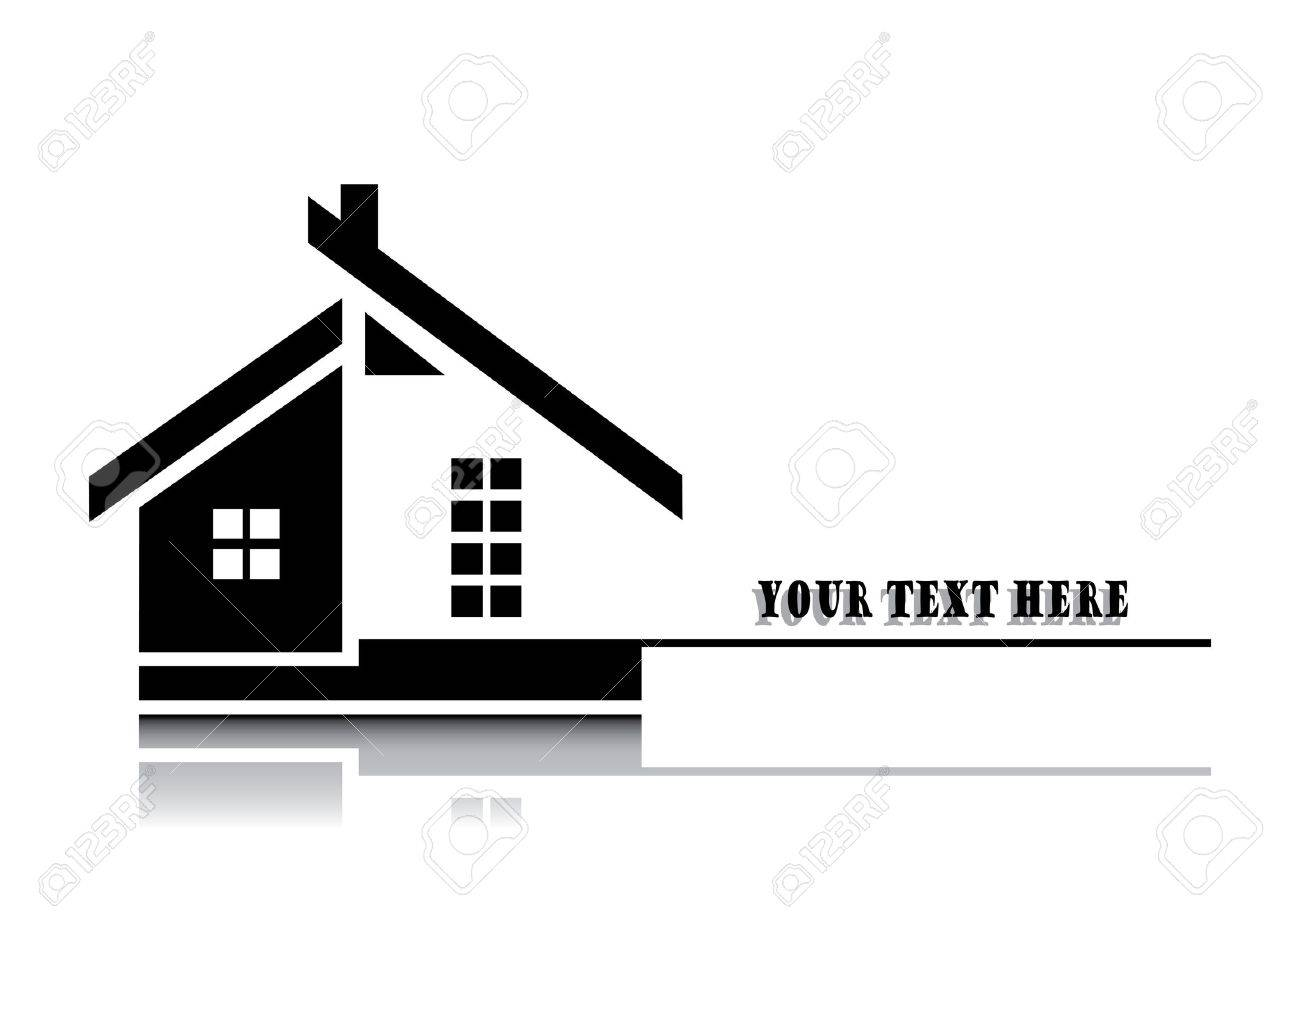 Home remodeling logo remodeling logo clipart - Home Improvement Illustration Of Home On White Background